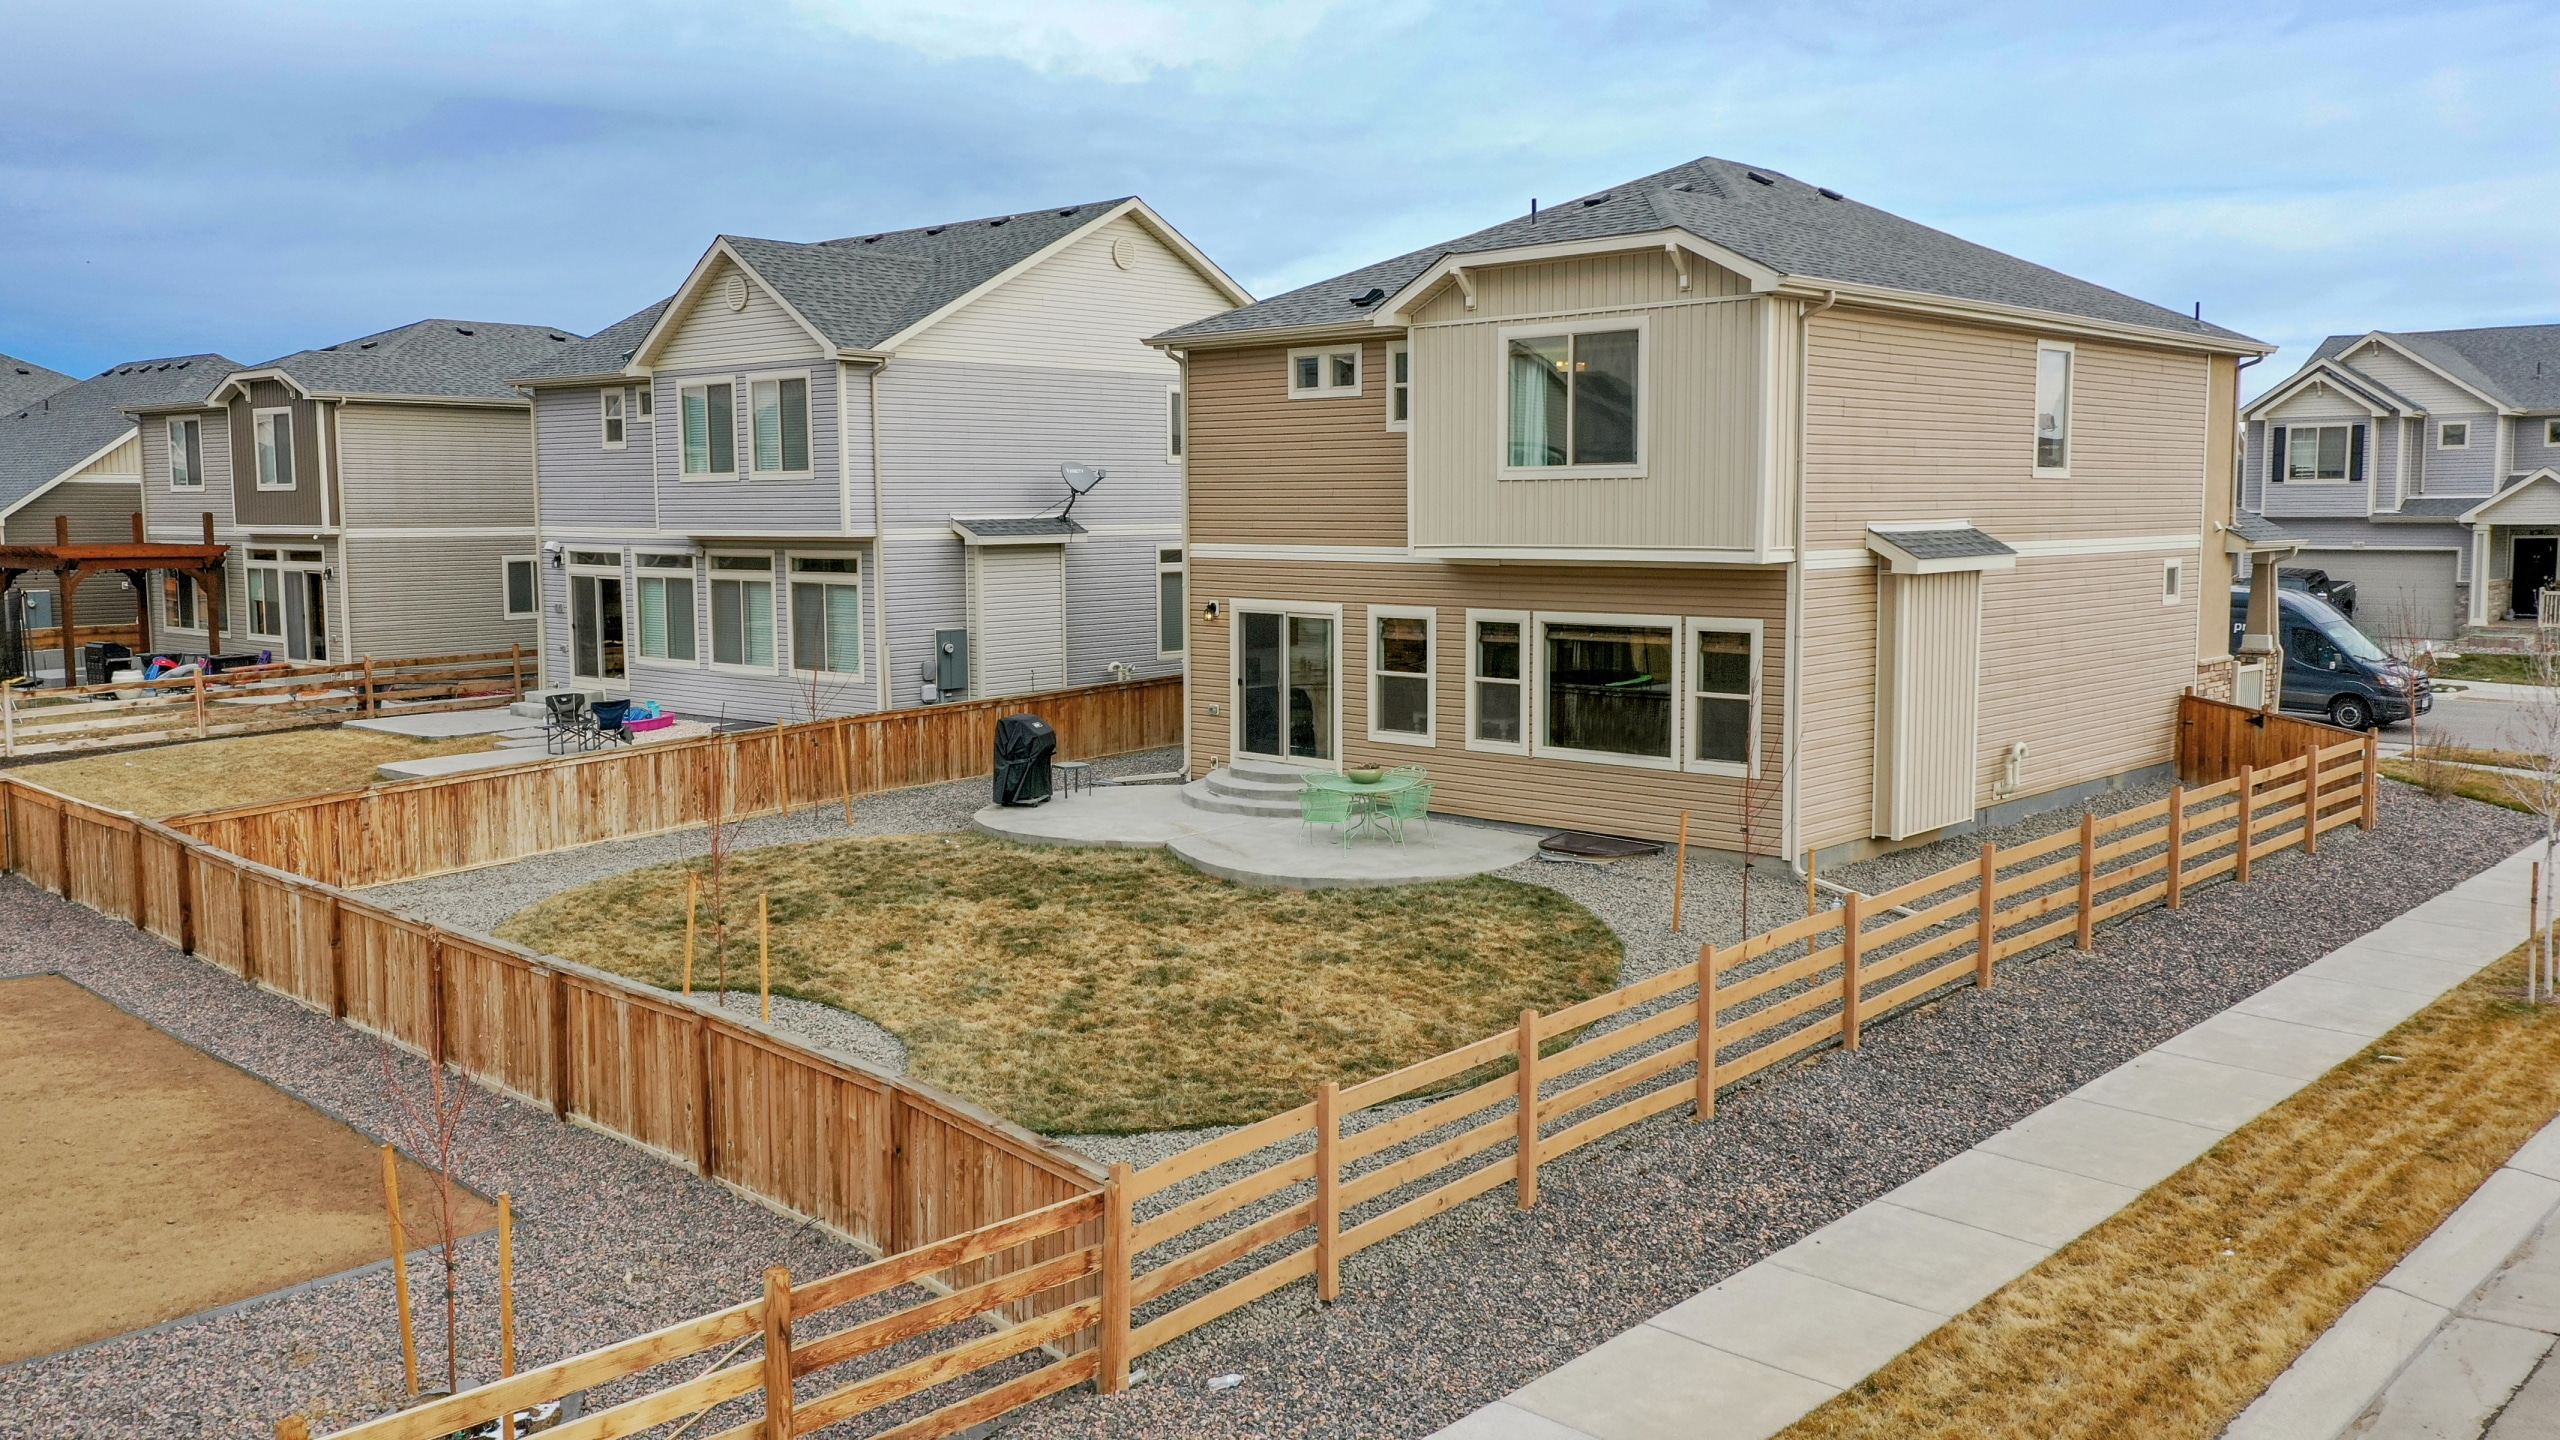 Commerce City Home for sale large backyard with green grass